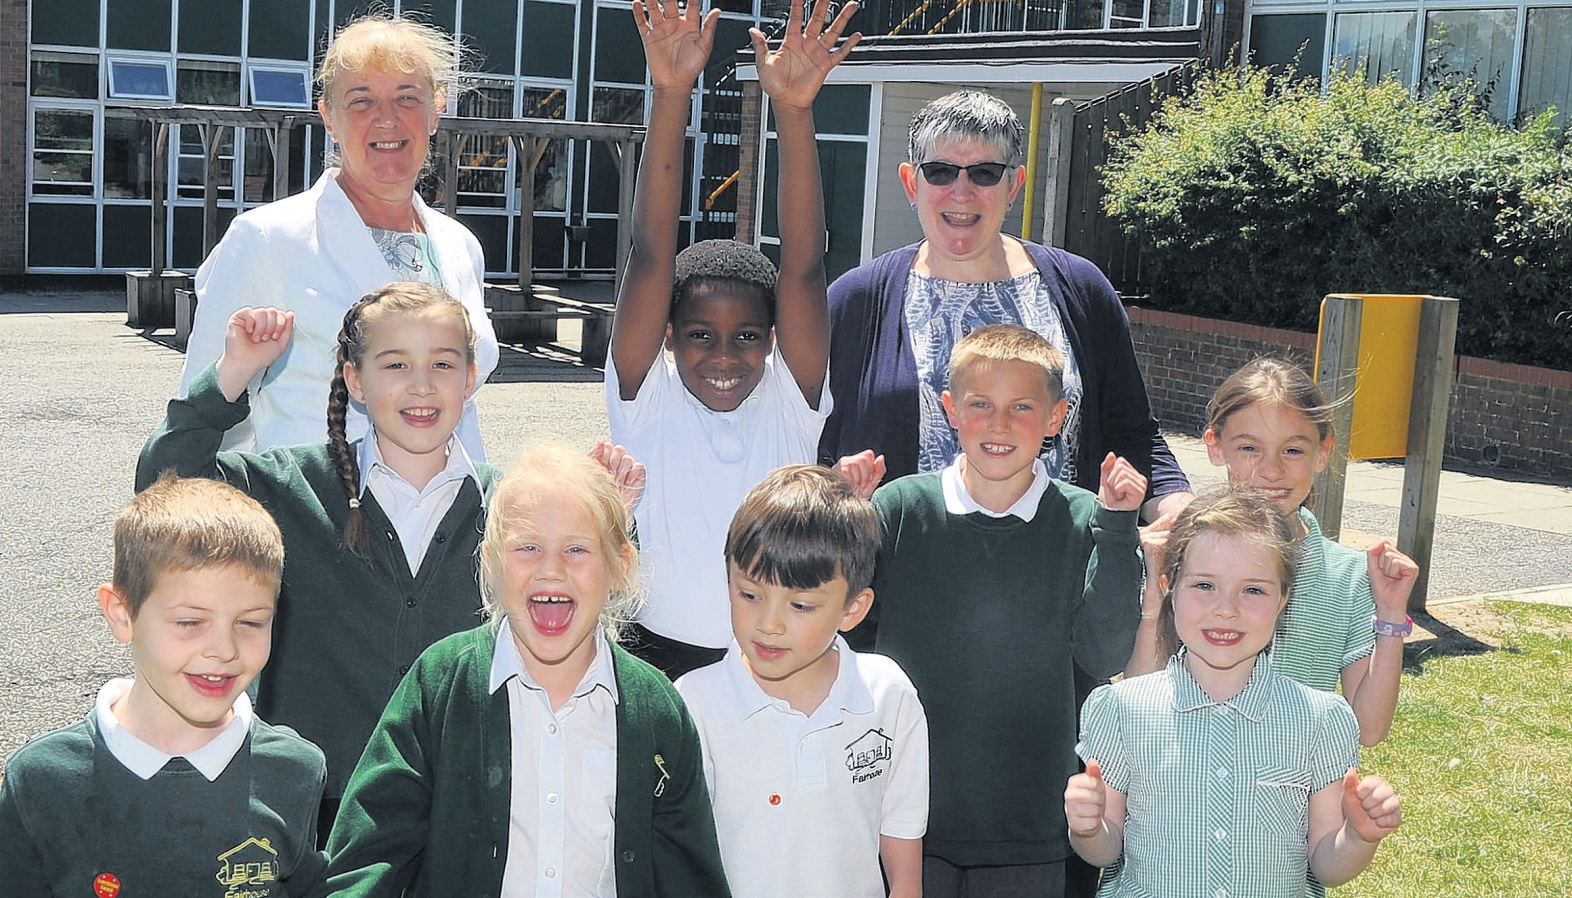 Schools merger will 'be boost for kids'